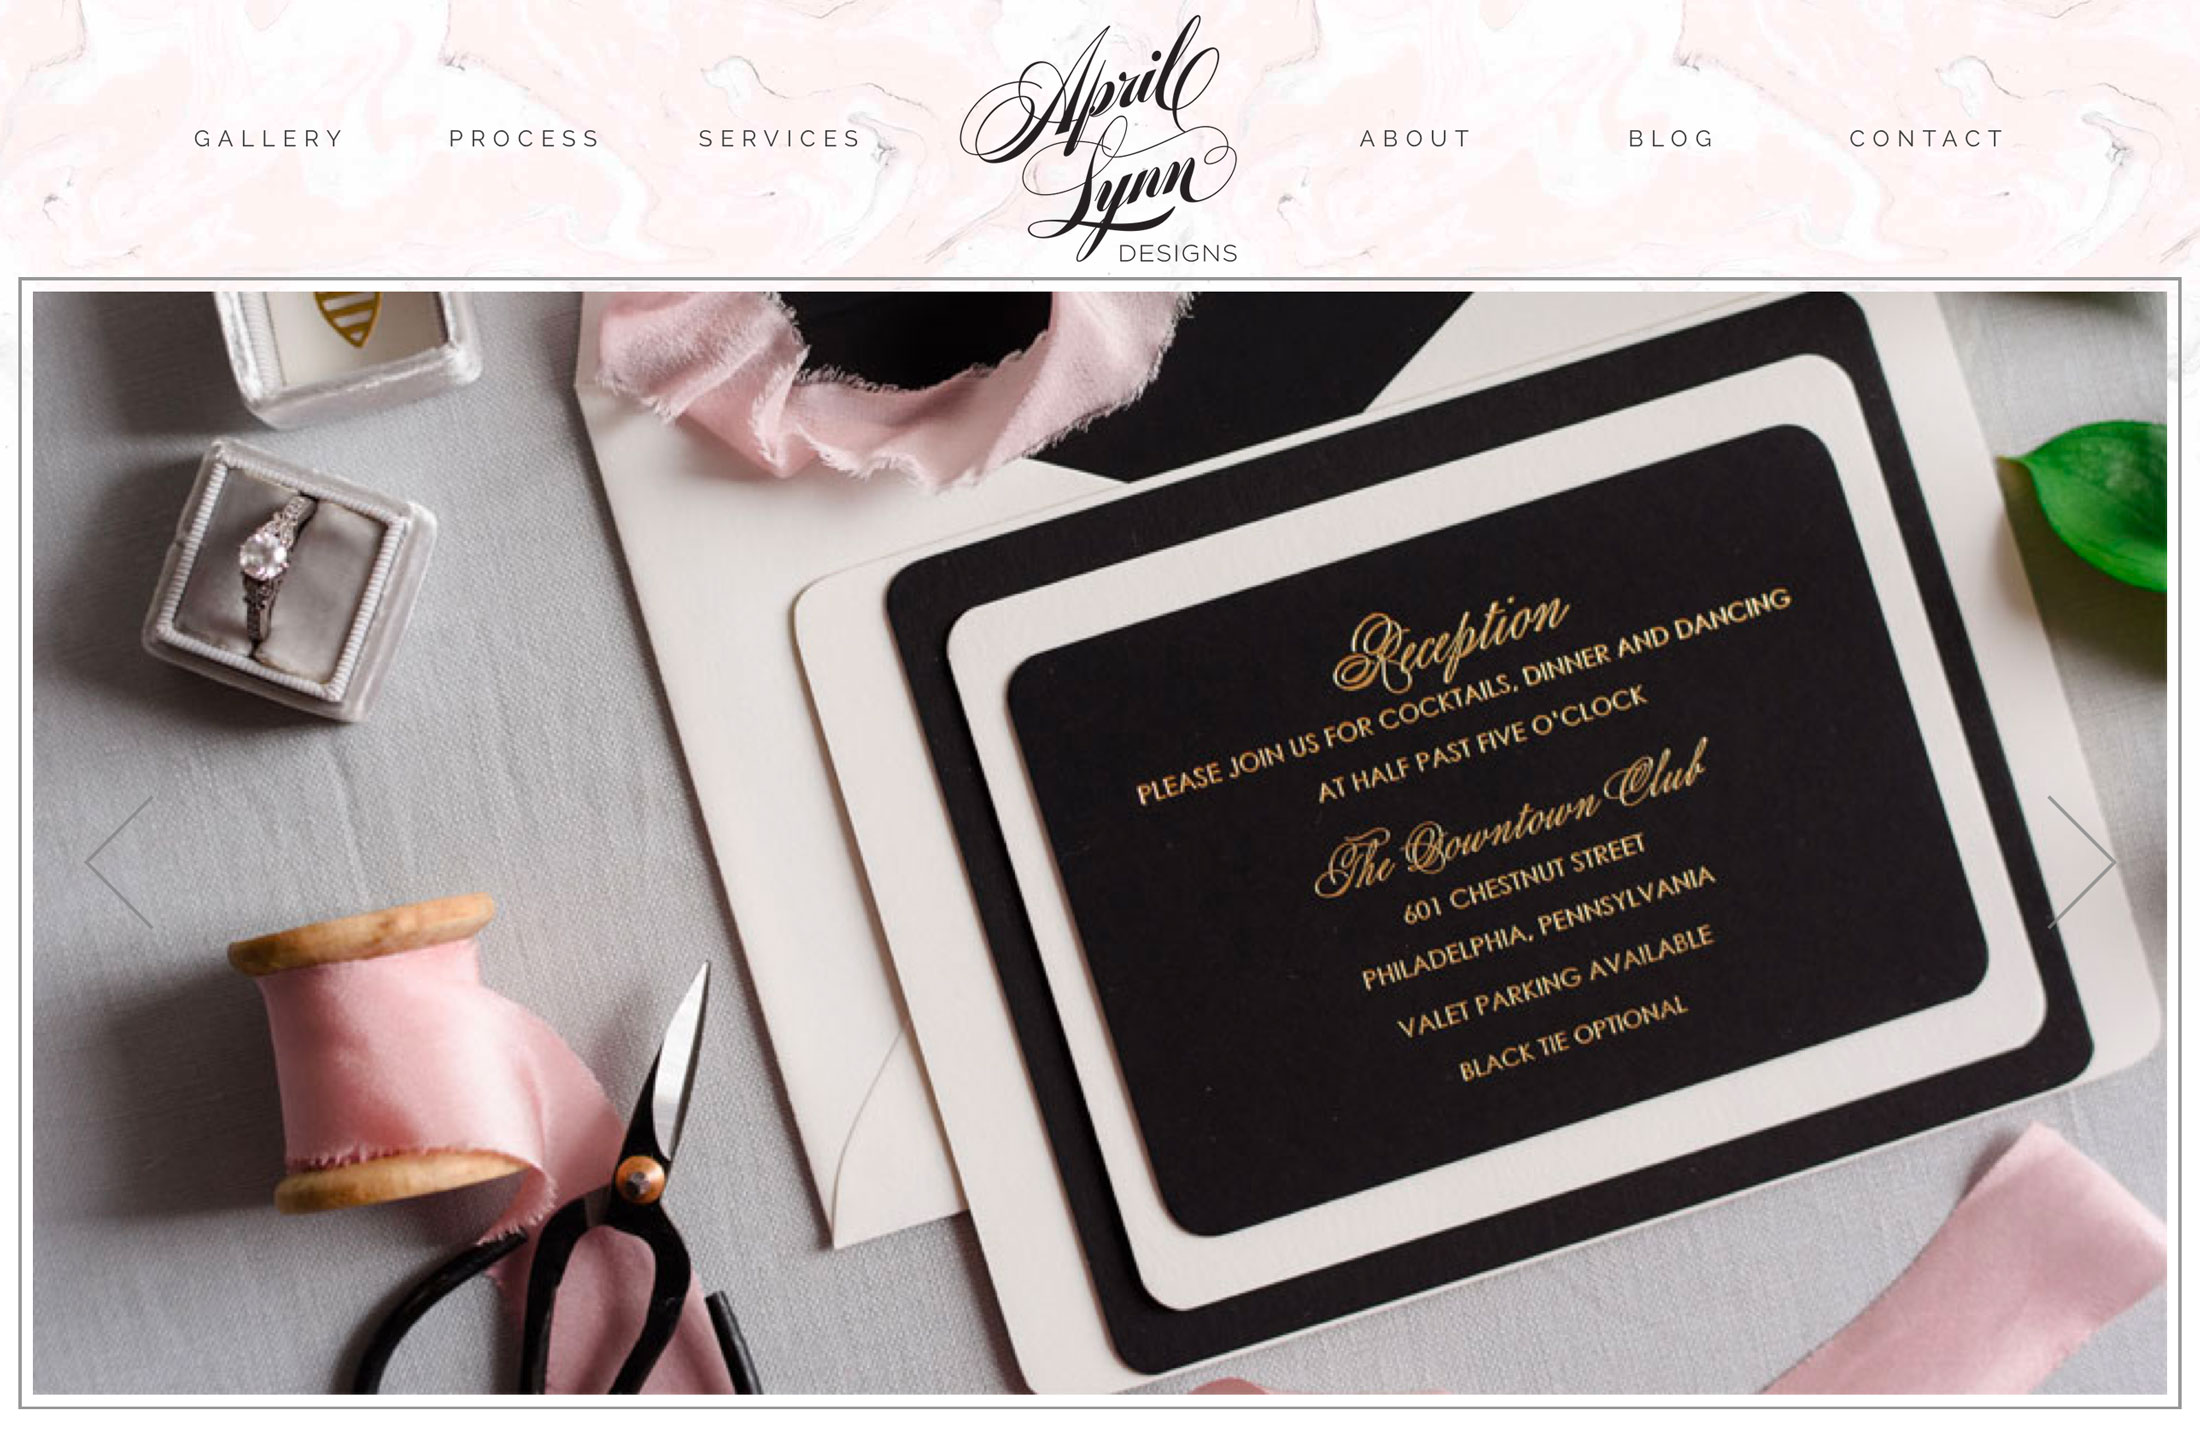 April_Lynn_Designs_New_Website_Branding_Graphic_Design_October_2017_Philadelphia_Bucks_County_Wedding_Invitations_Luxury